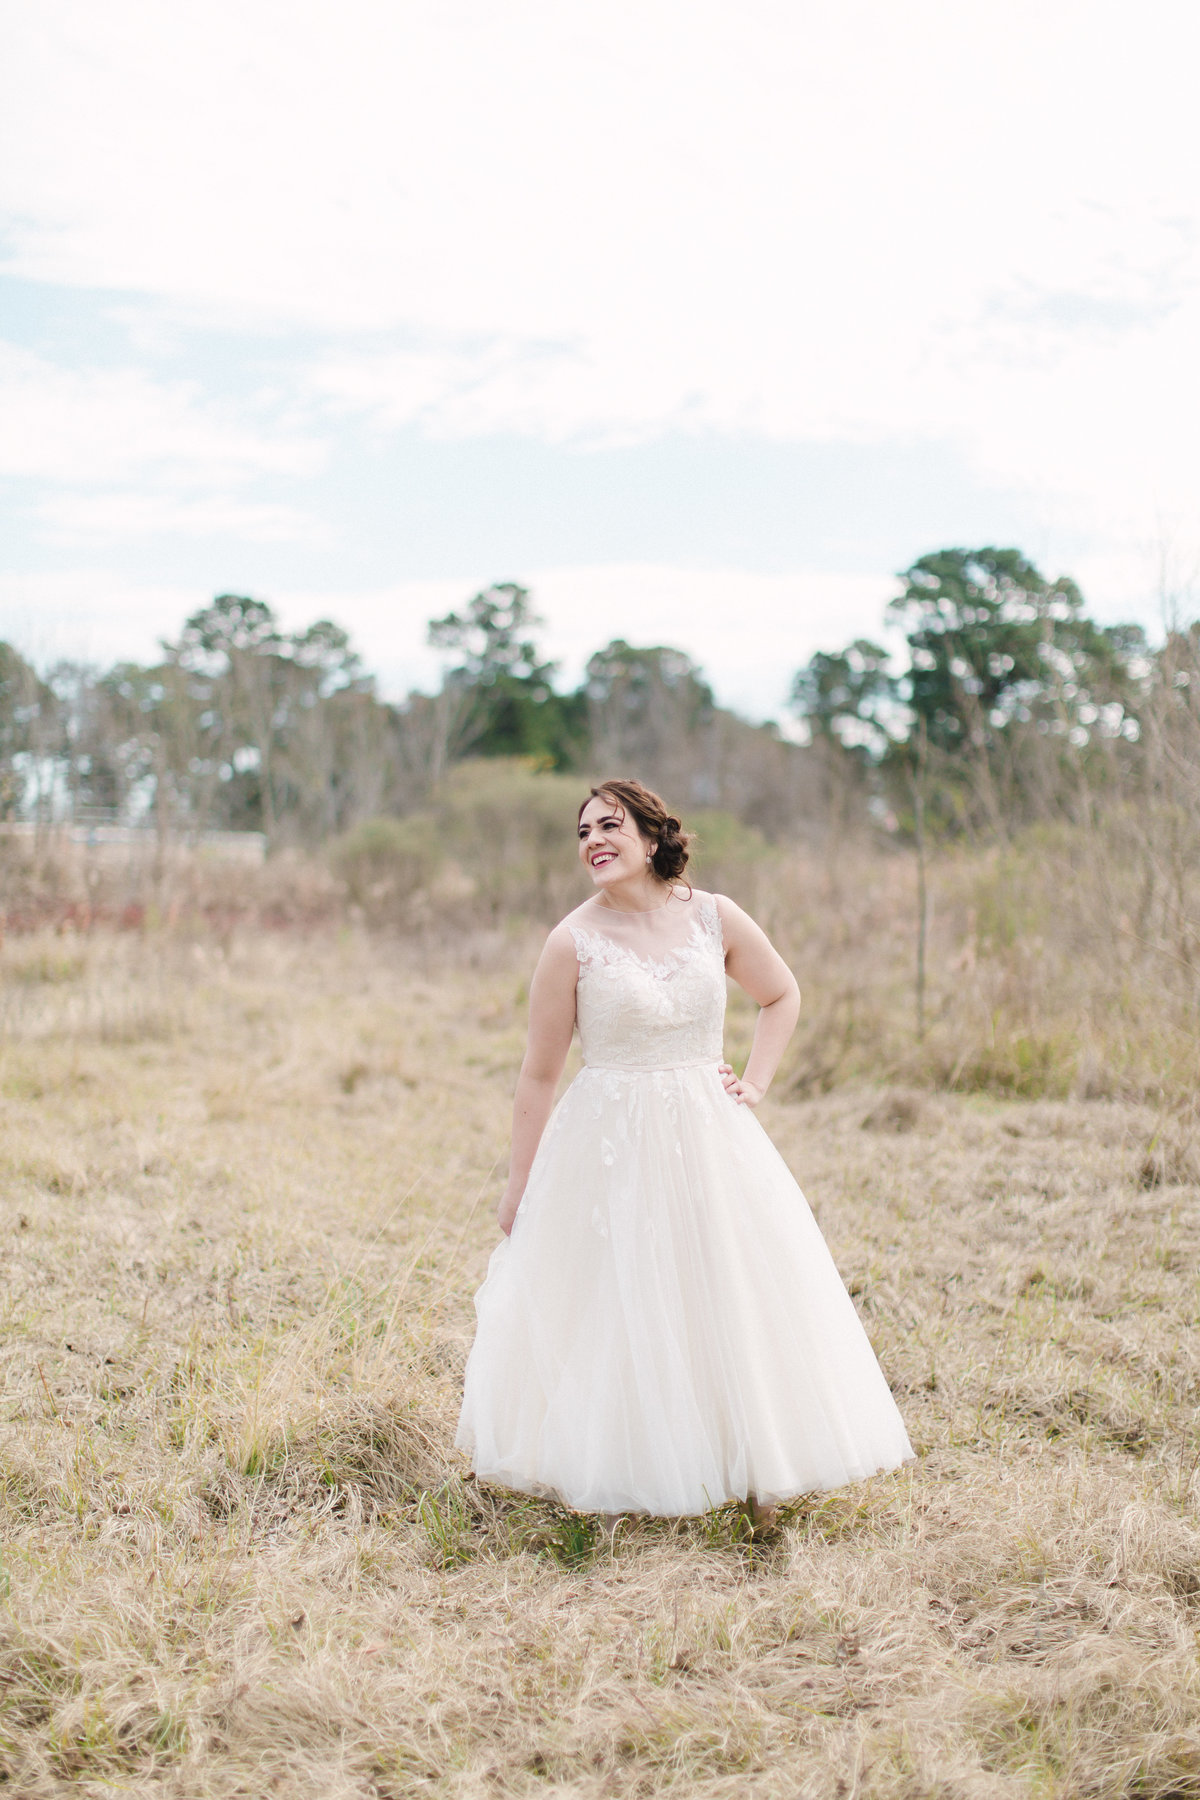 The-woodlands-bridal-session-alicia-yarrish-photography-20